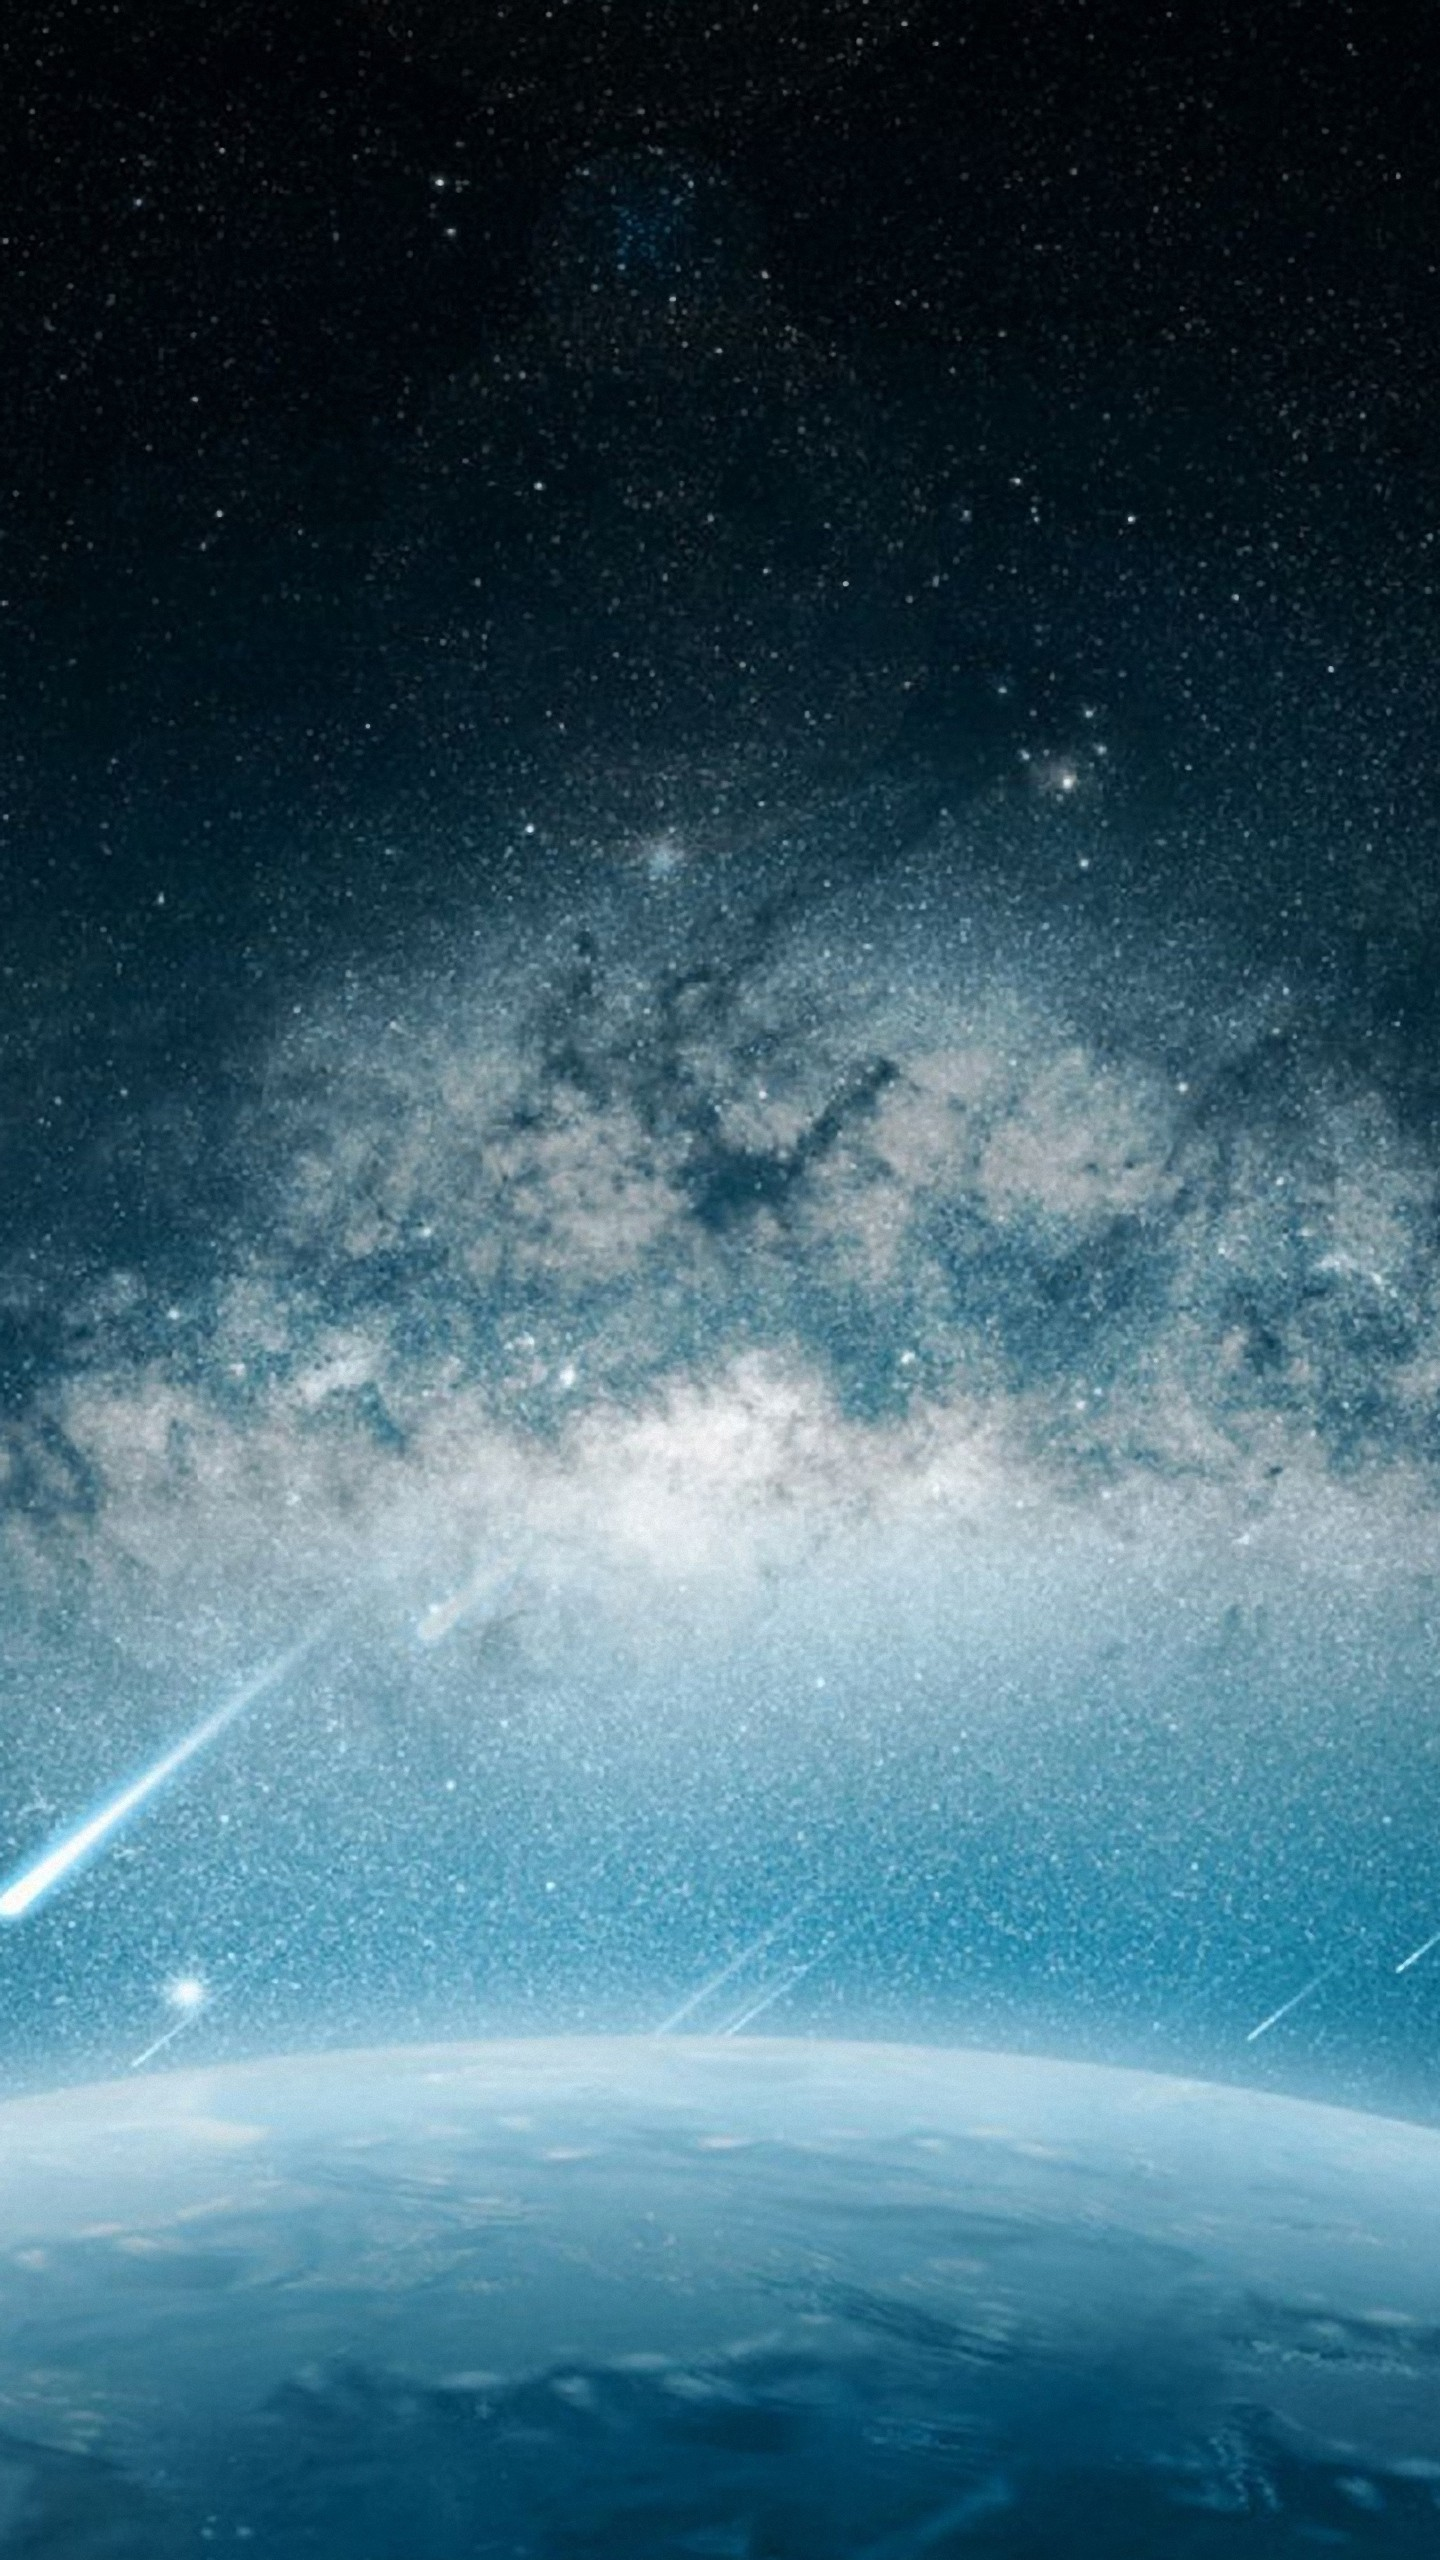 1440x2560 download space meteorite planet rain wallpaper for samsung galaxy s6